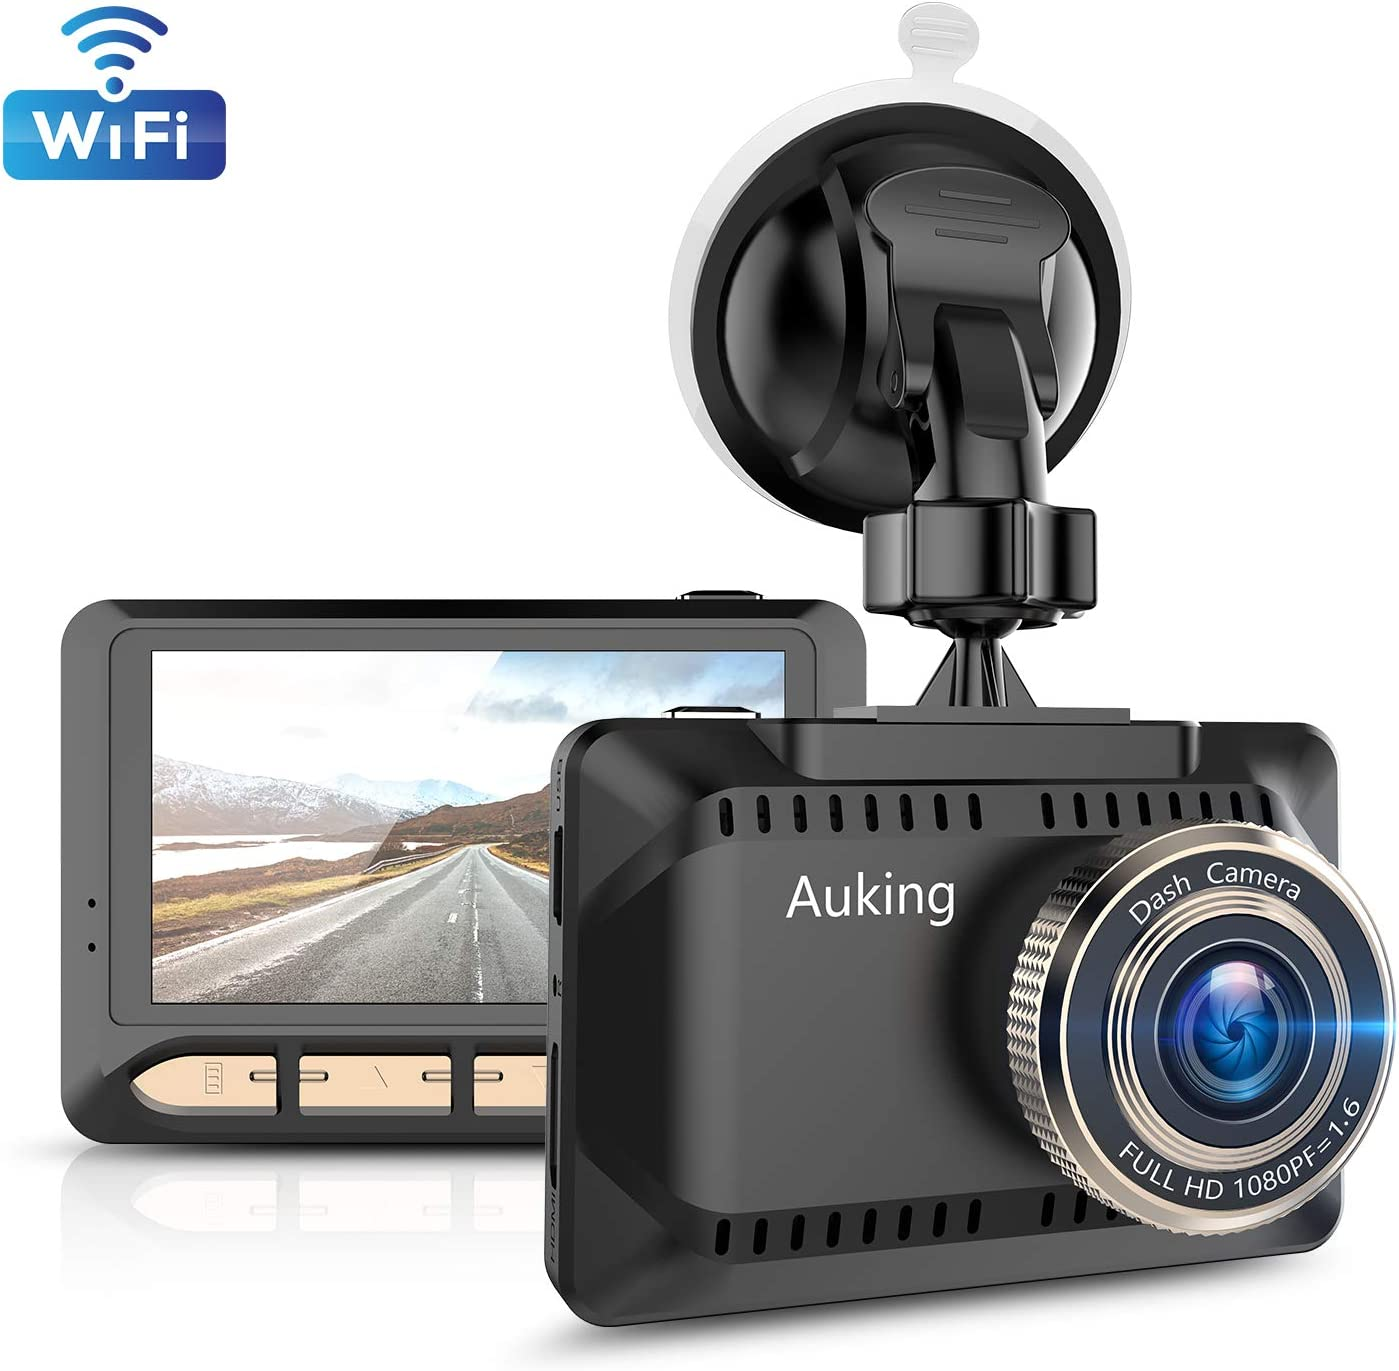 Loop Recording G-Sensor AuKing WiFi Dash Cam 1080P Full HD Dash Camera for Cars 2.45 Inch IPS Screen Car Camera Driving Recorder with Phone APP Parking Monitor 170/° Wide Angle WDR Night Vision